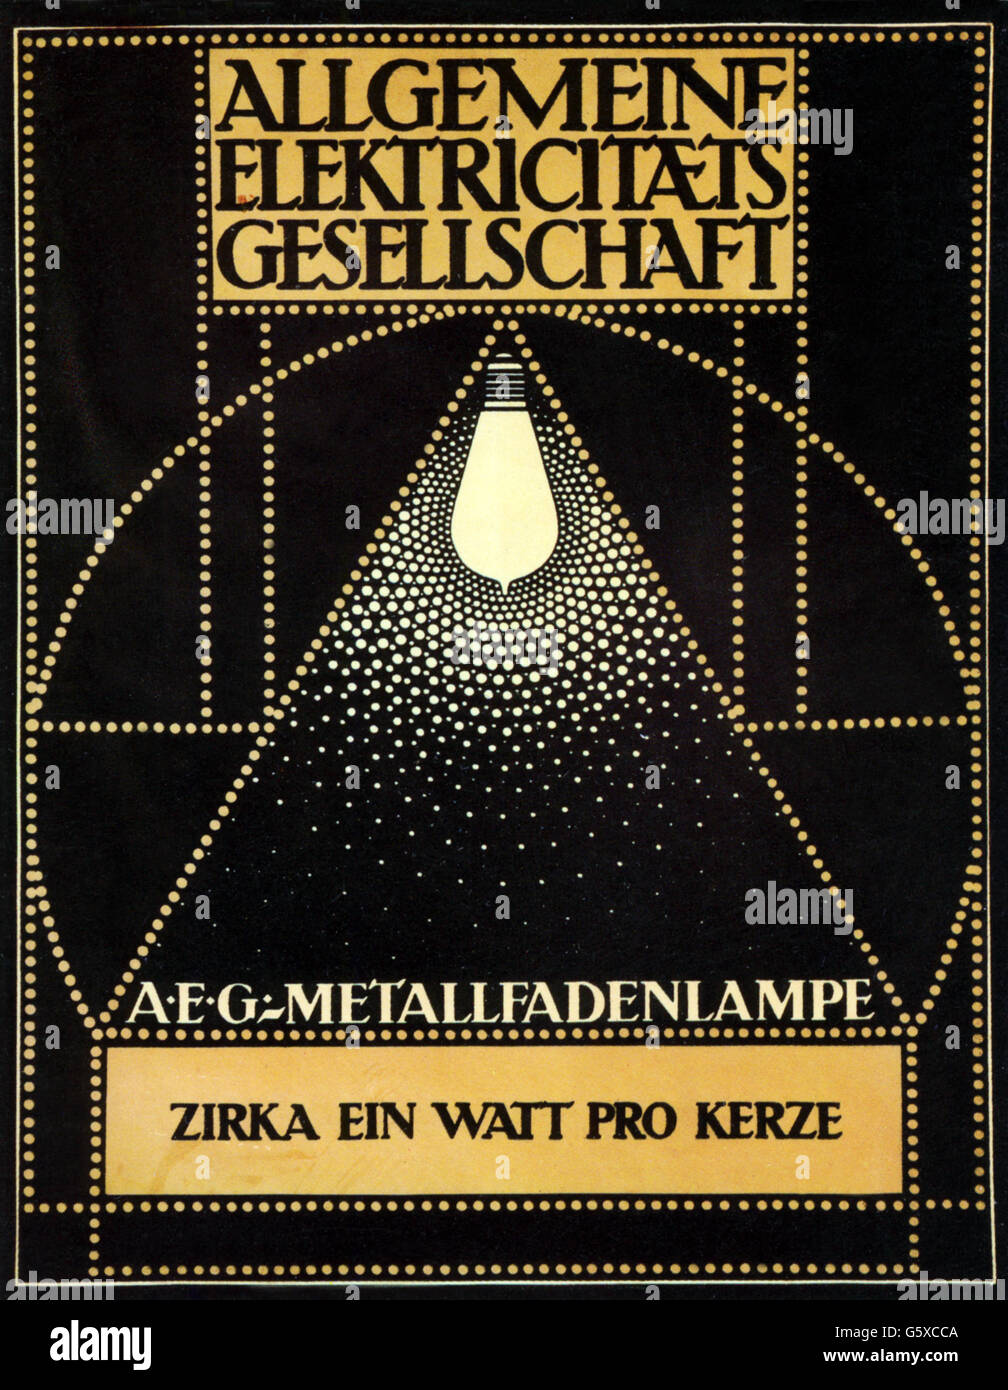 energy, electricity, advertsing, for the AEG metallic filament lightbulb, design: Peter Behrens (1868 - 1940), lithograph, - Stock Image